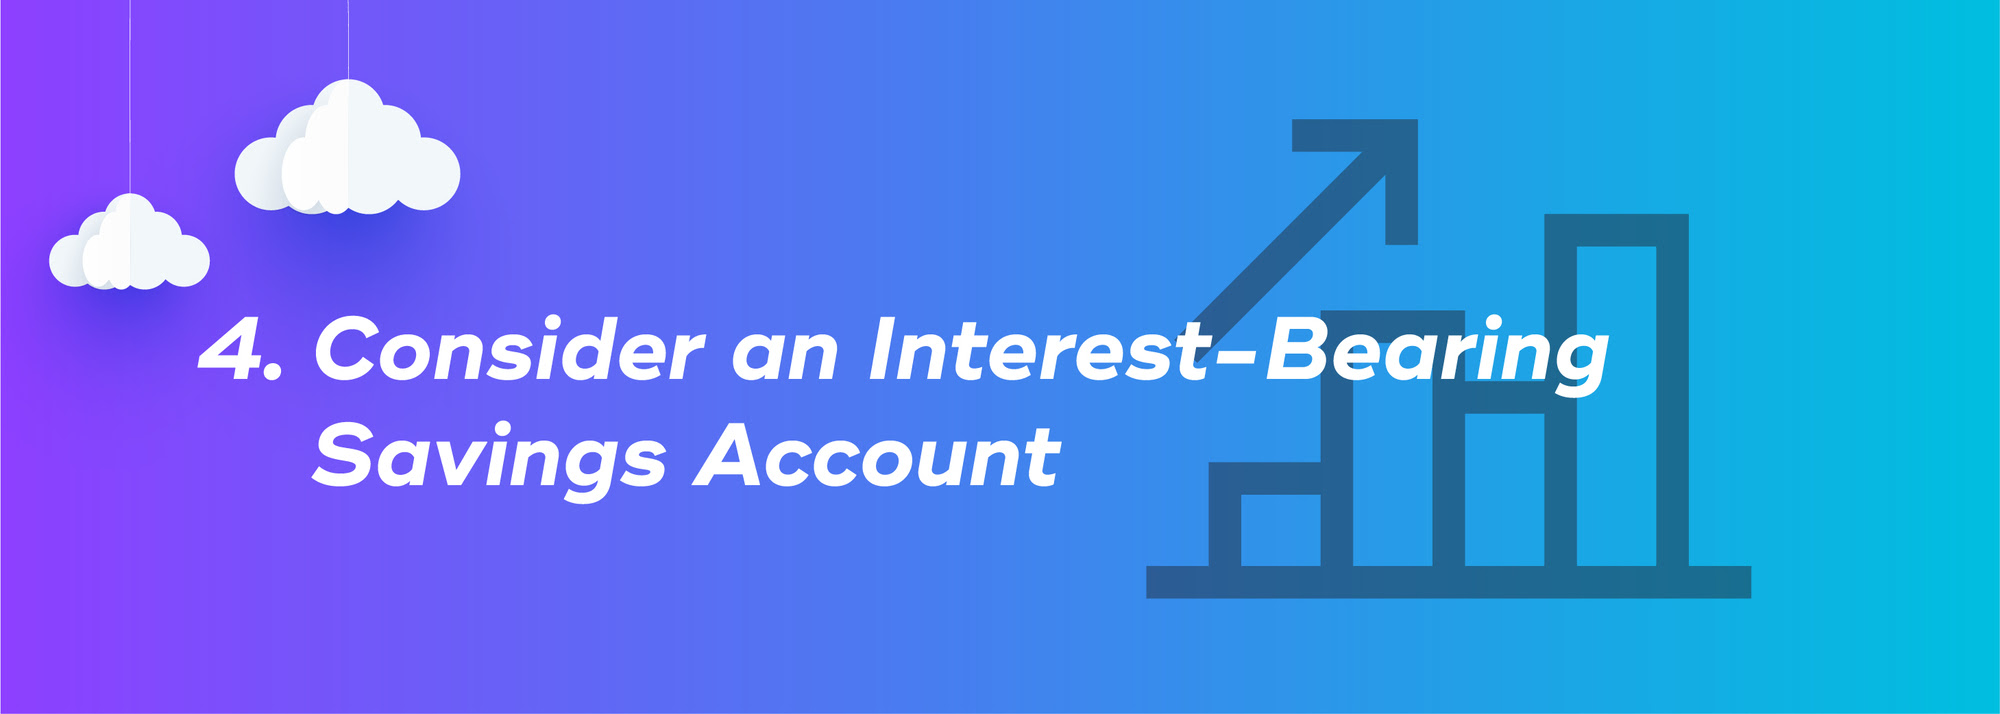 Interest-Bearing Savings Account